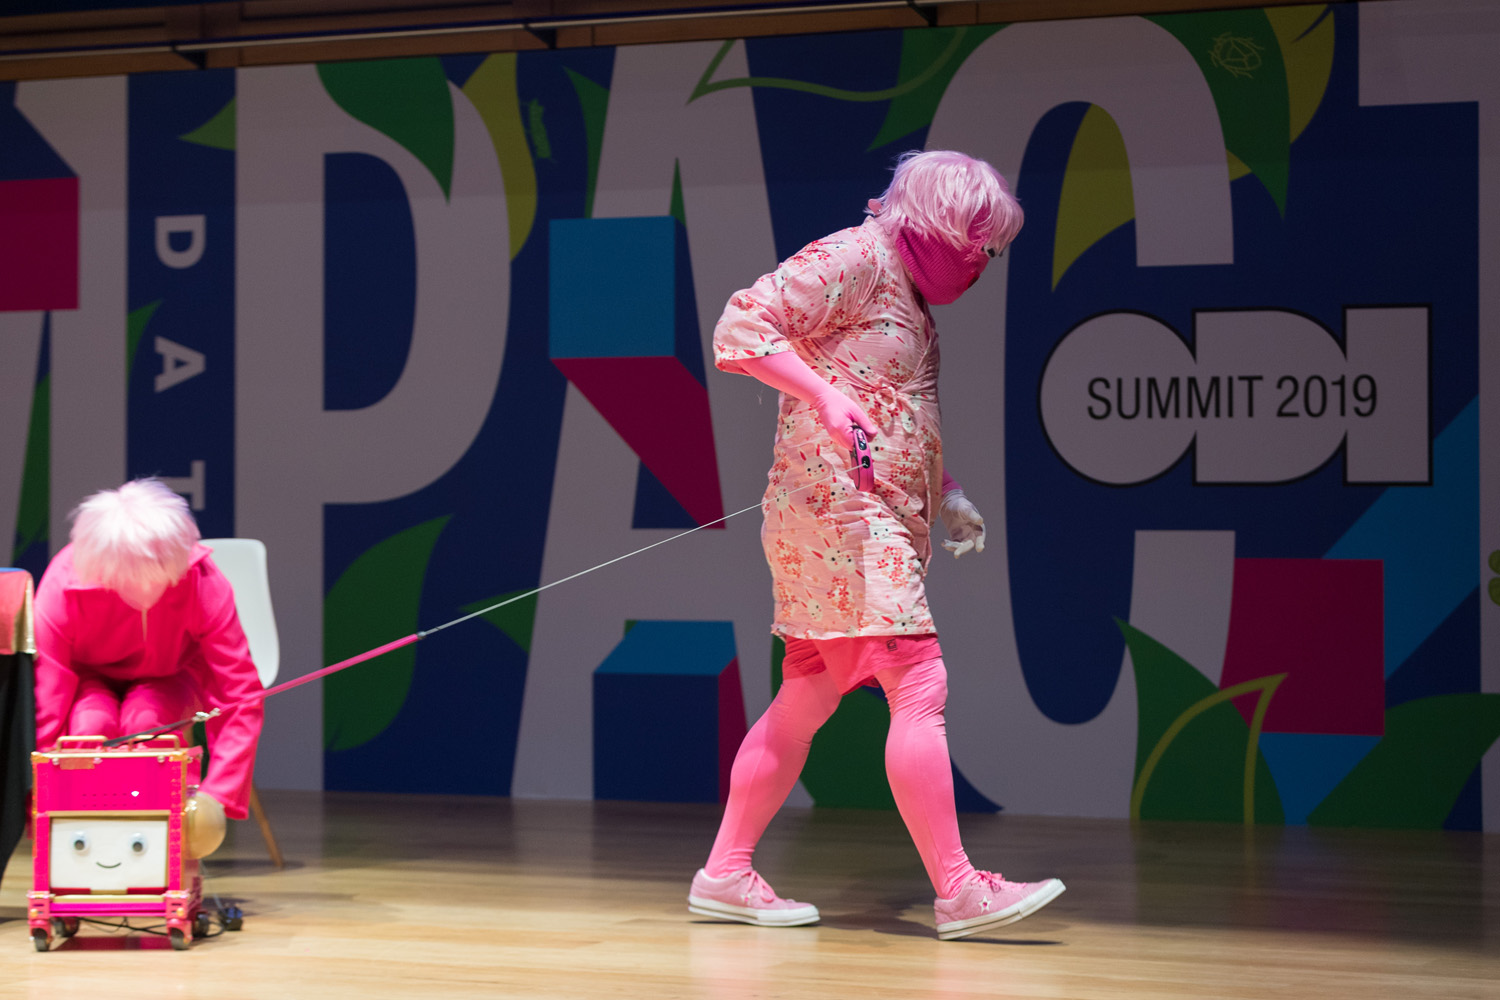 A person dressed in pink, with a pink mask, leading a small pink robot with a smiling face from a stage.